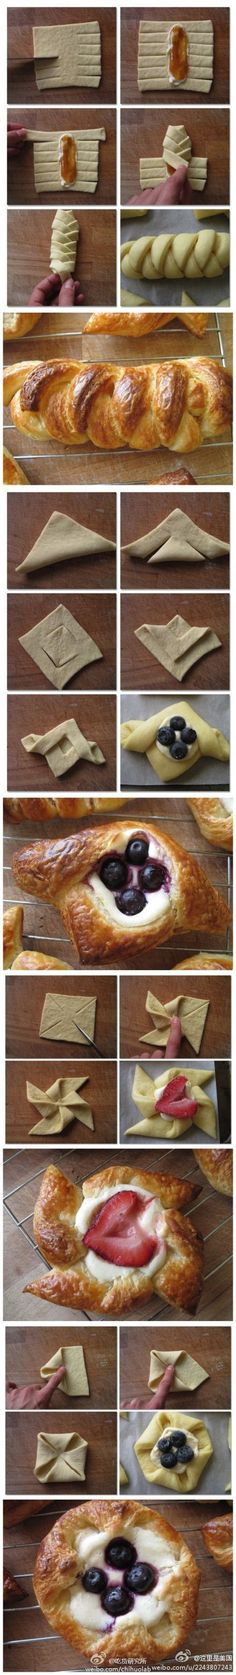 Yummo! Pastries... #pastries by mirela-anna